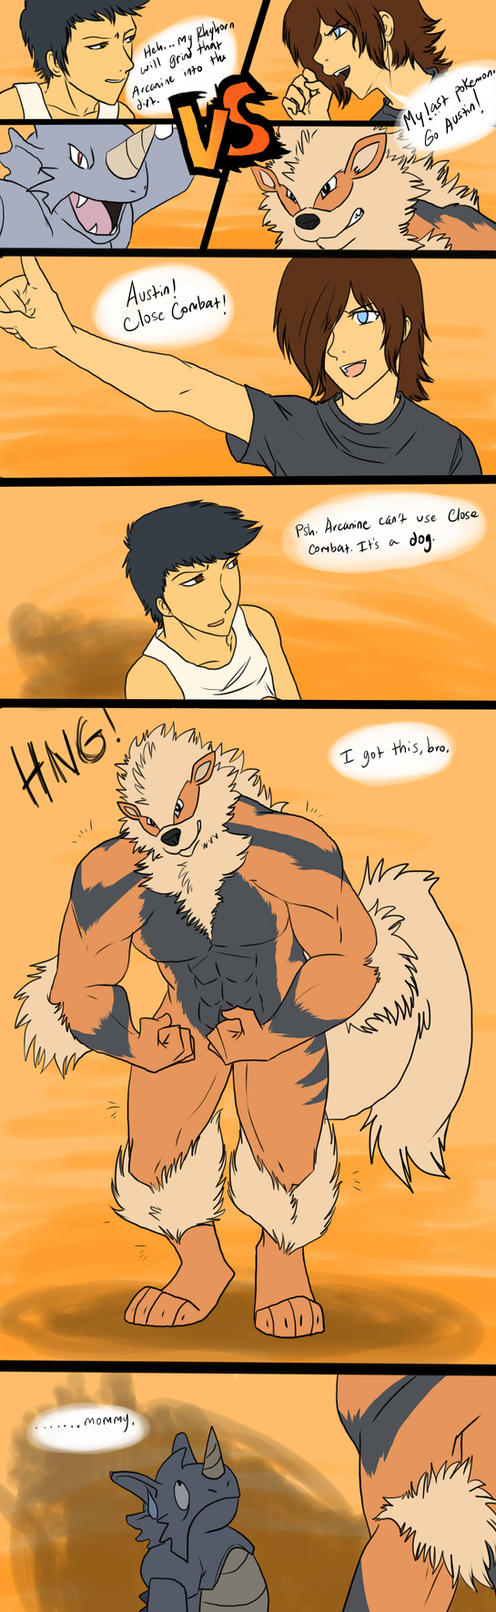 Can Arcanine have both Flamethrower and Extreme Speed ...